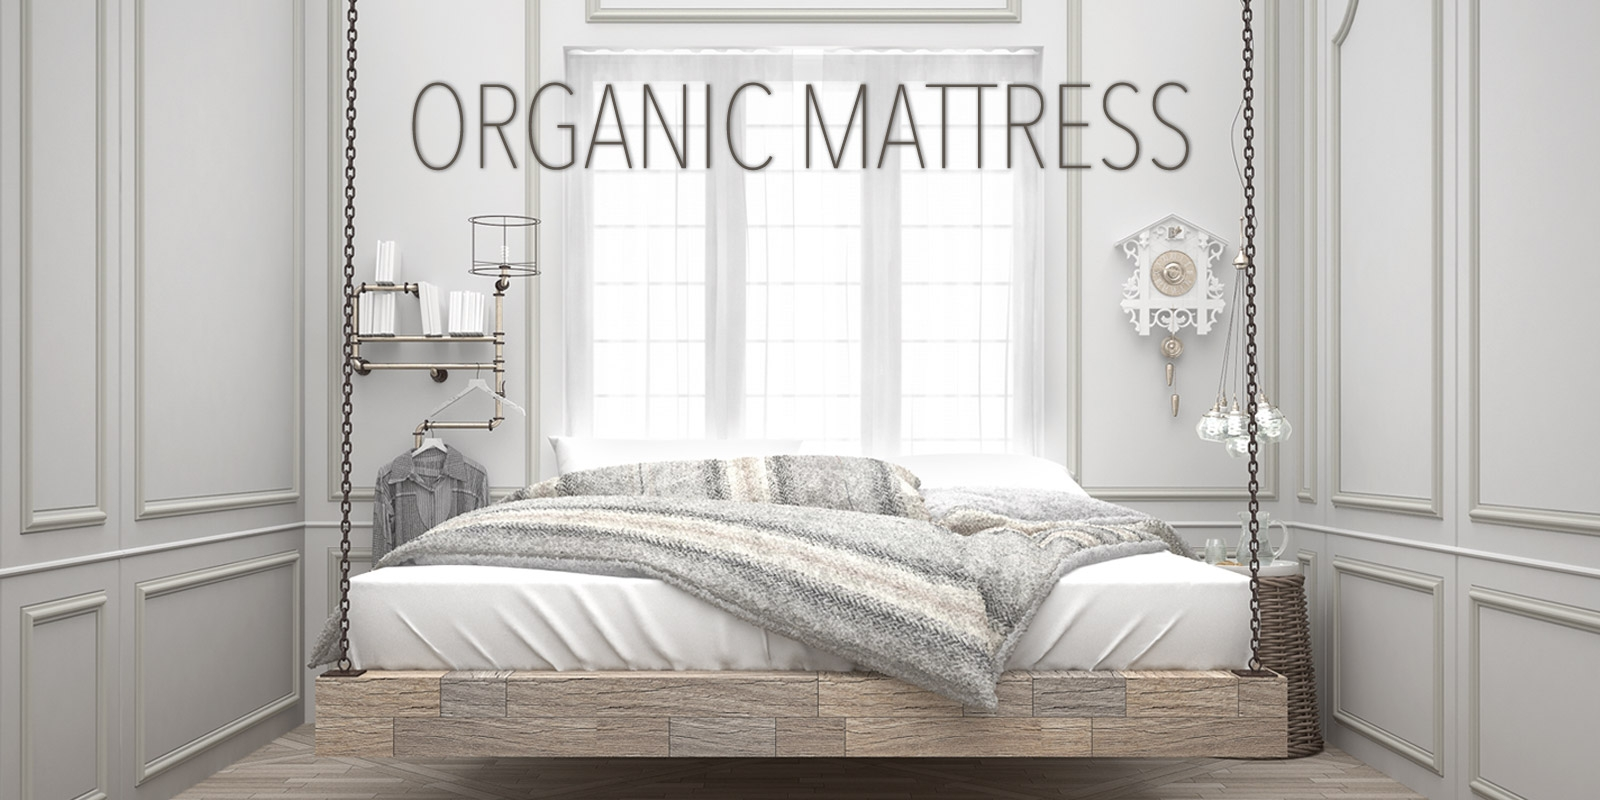 What Is An Organic Mattress